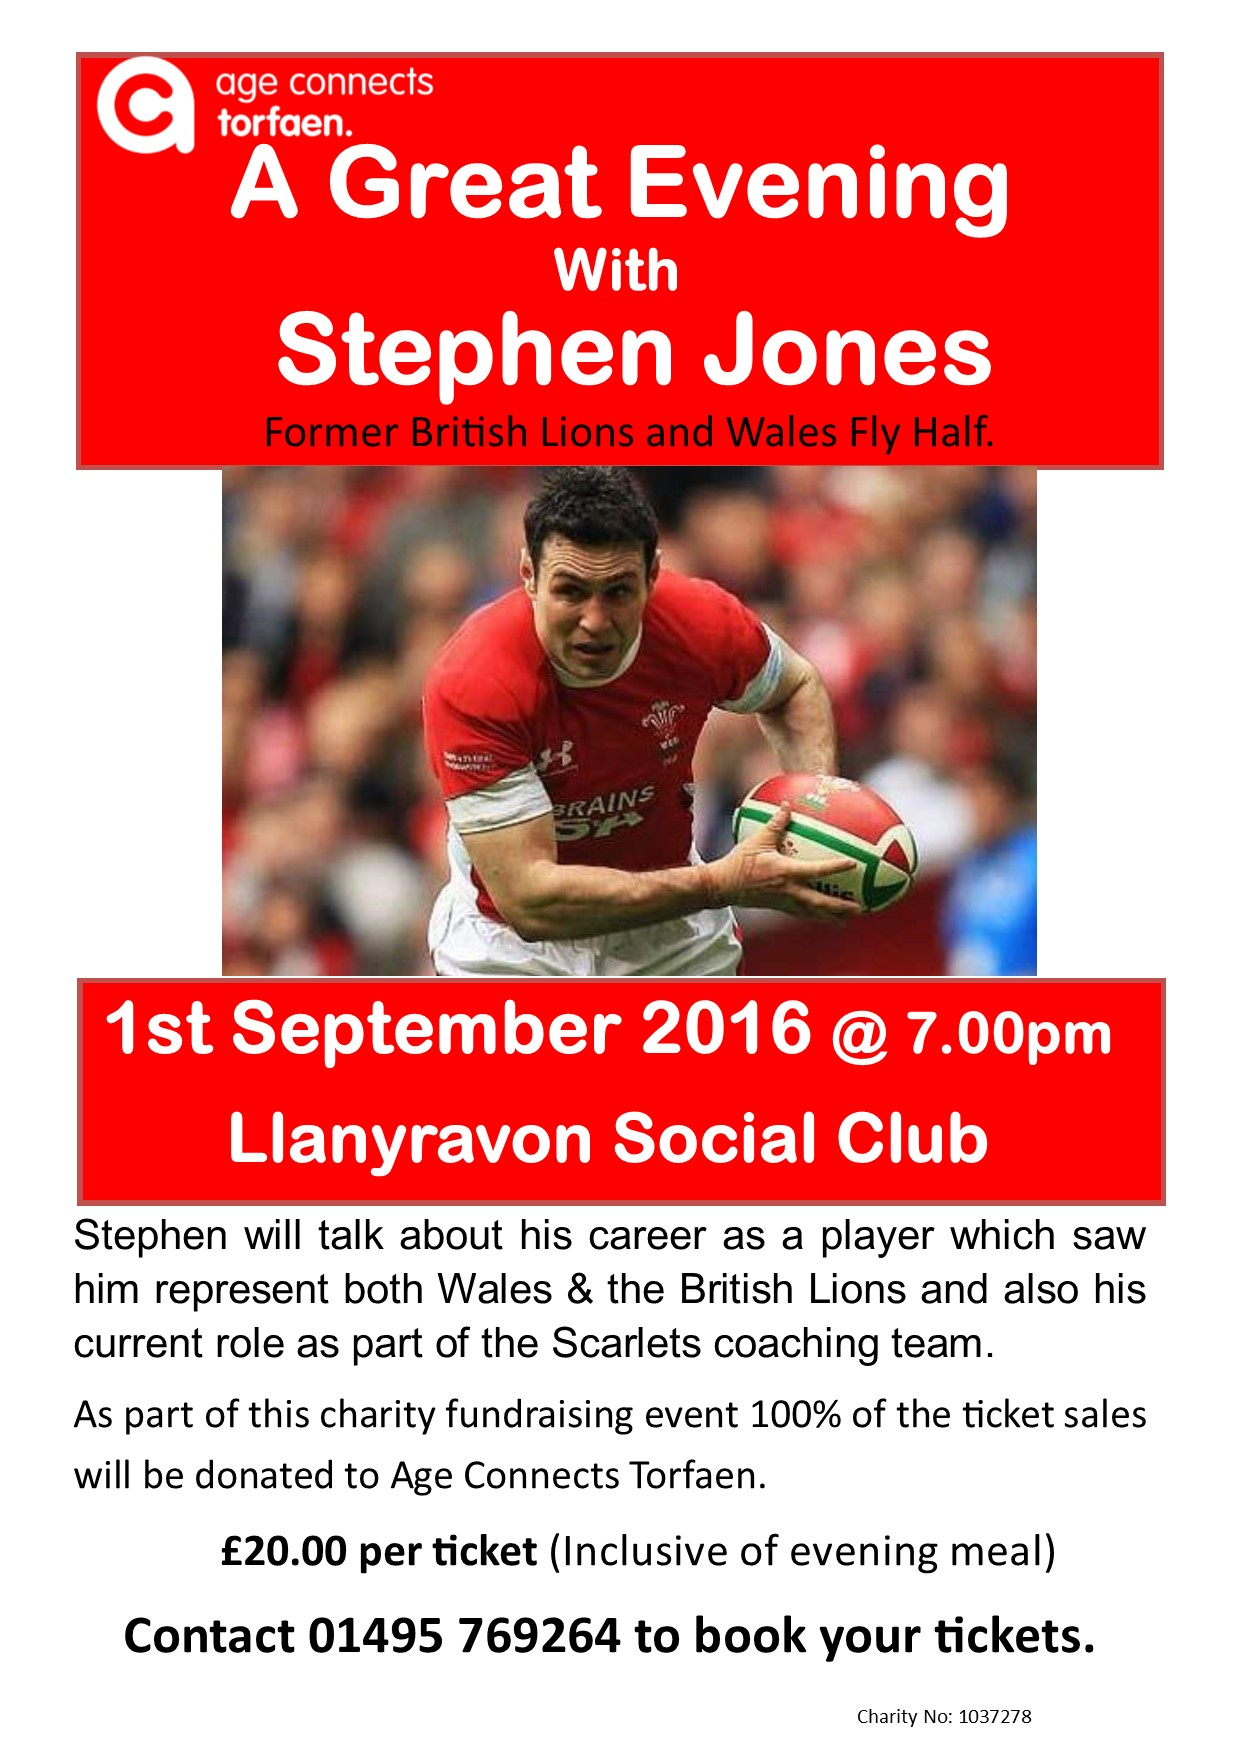 An Evening with former British Lions & Wales star Stephen Jones